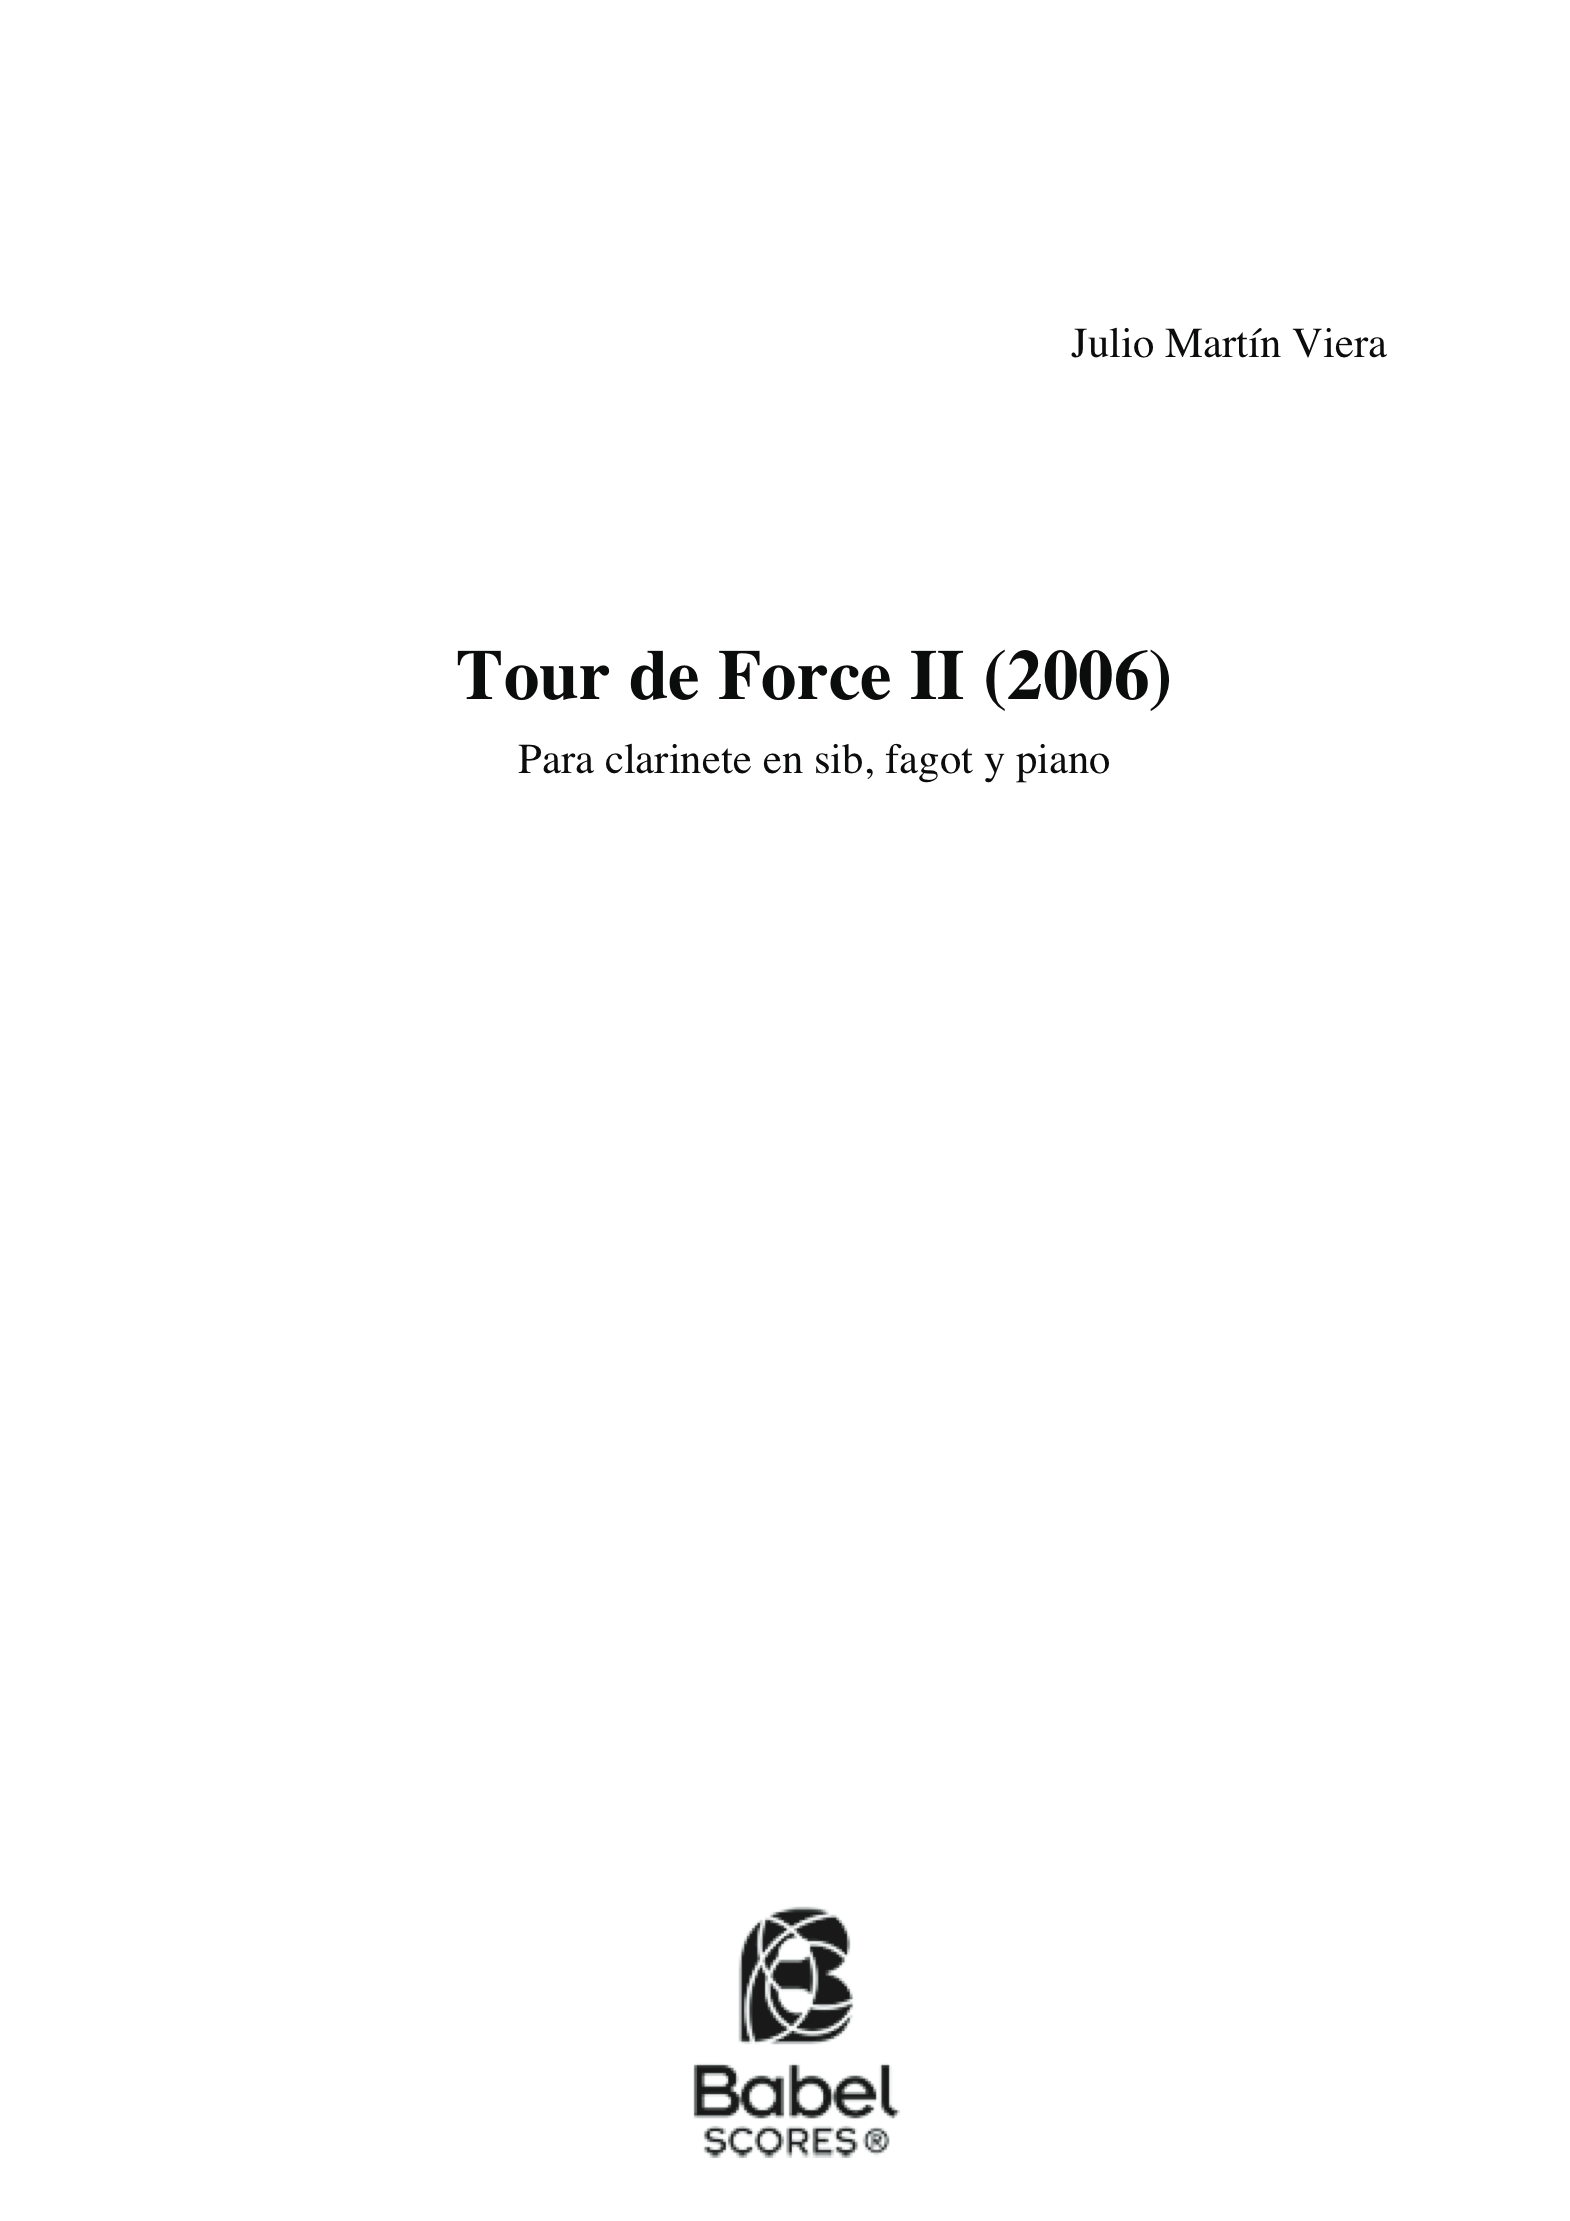 Tour de force trio 2006 z